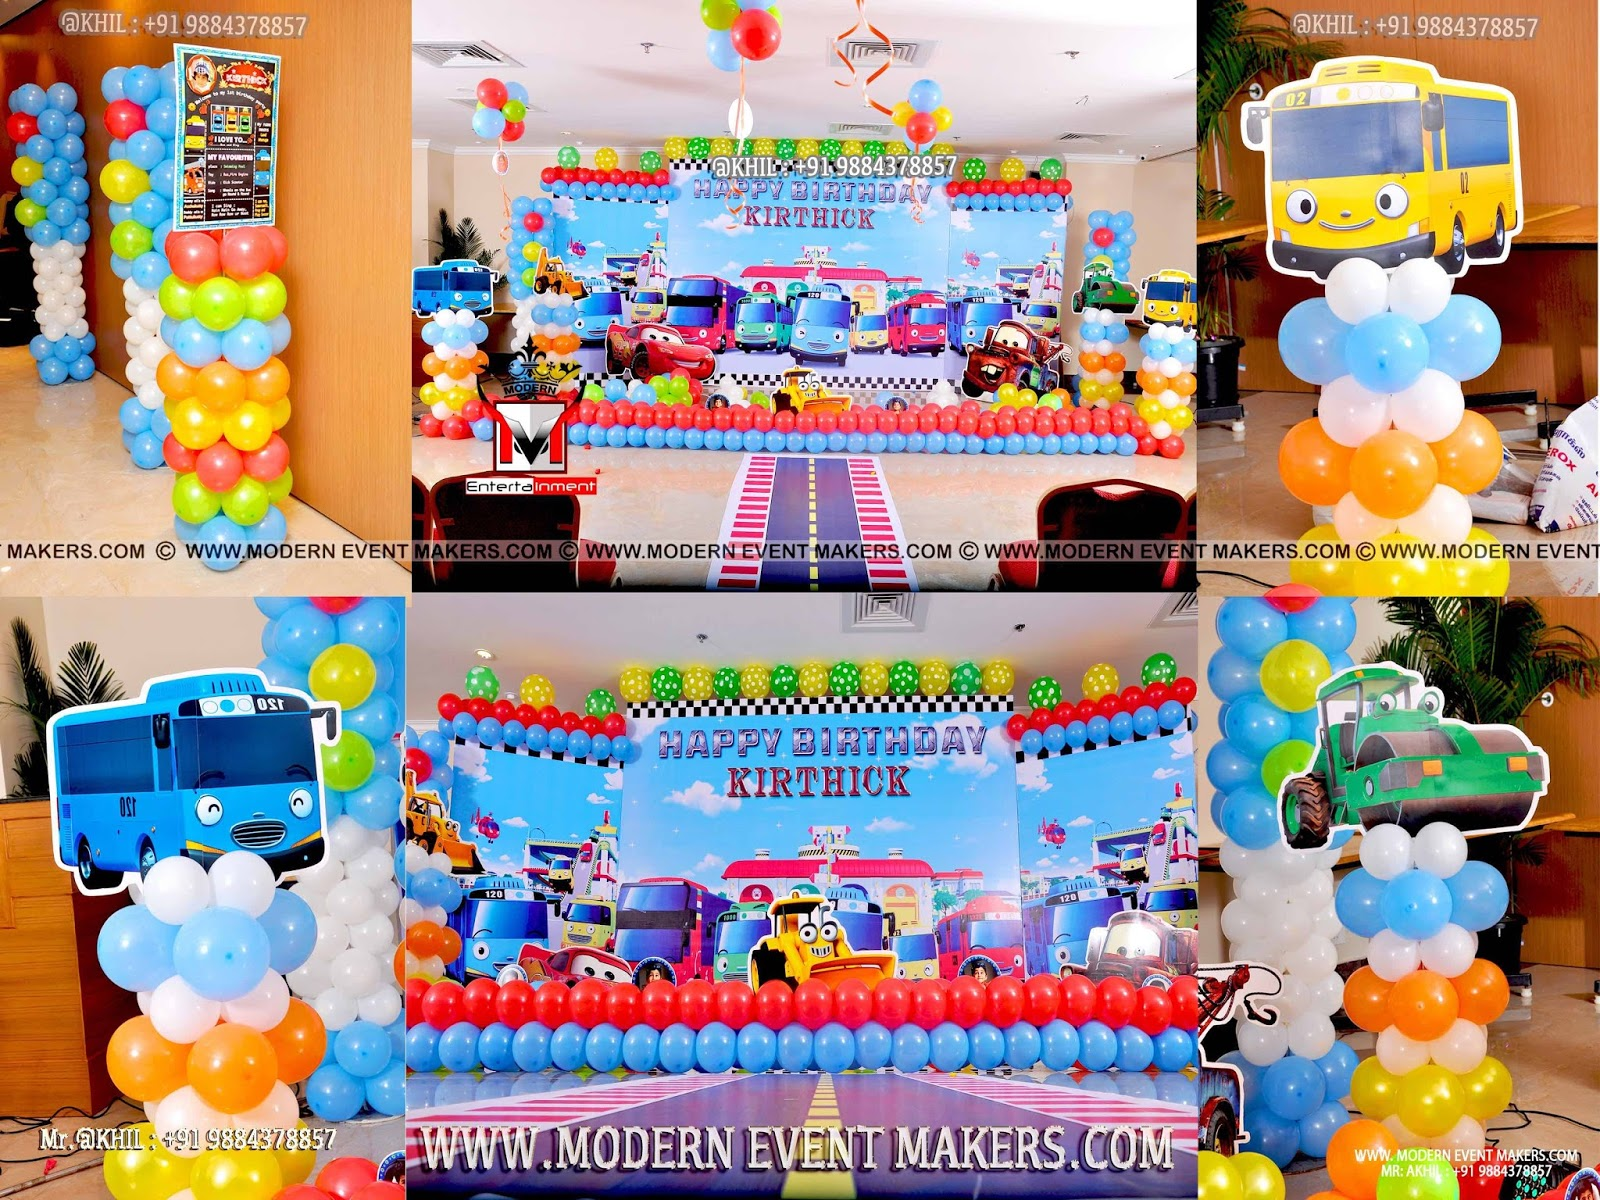 Theme Birthday Party Organisers In Chennai 9884378857